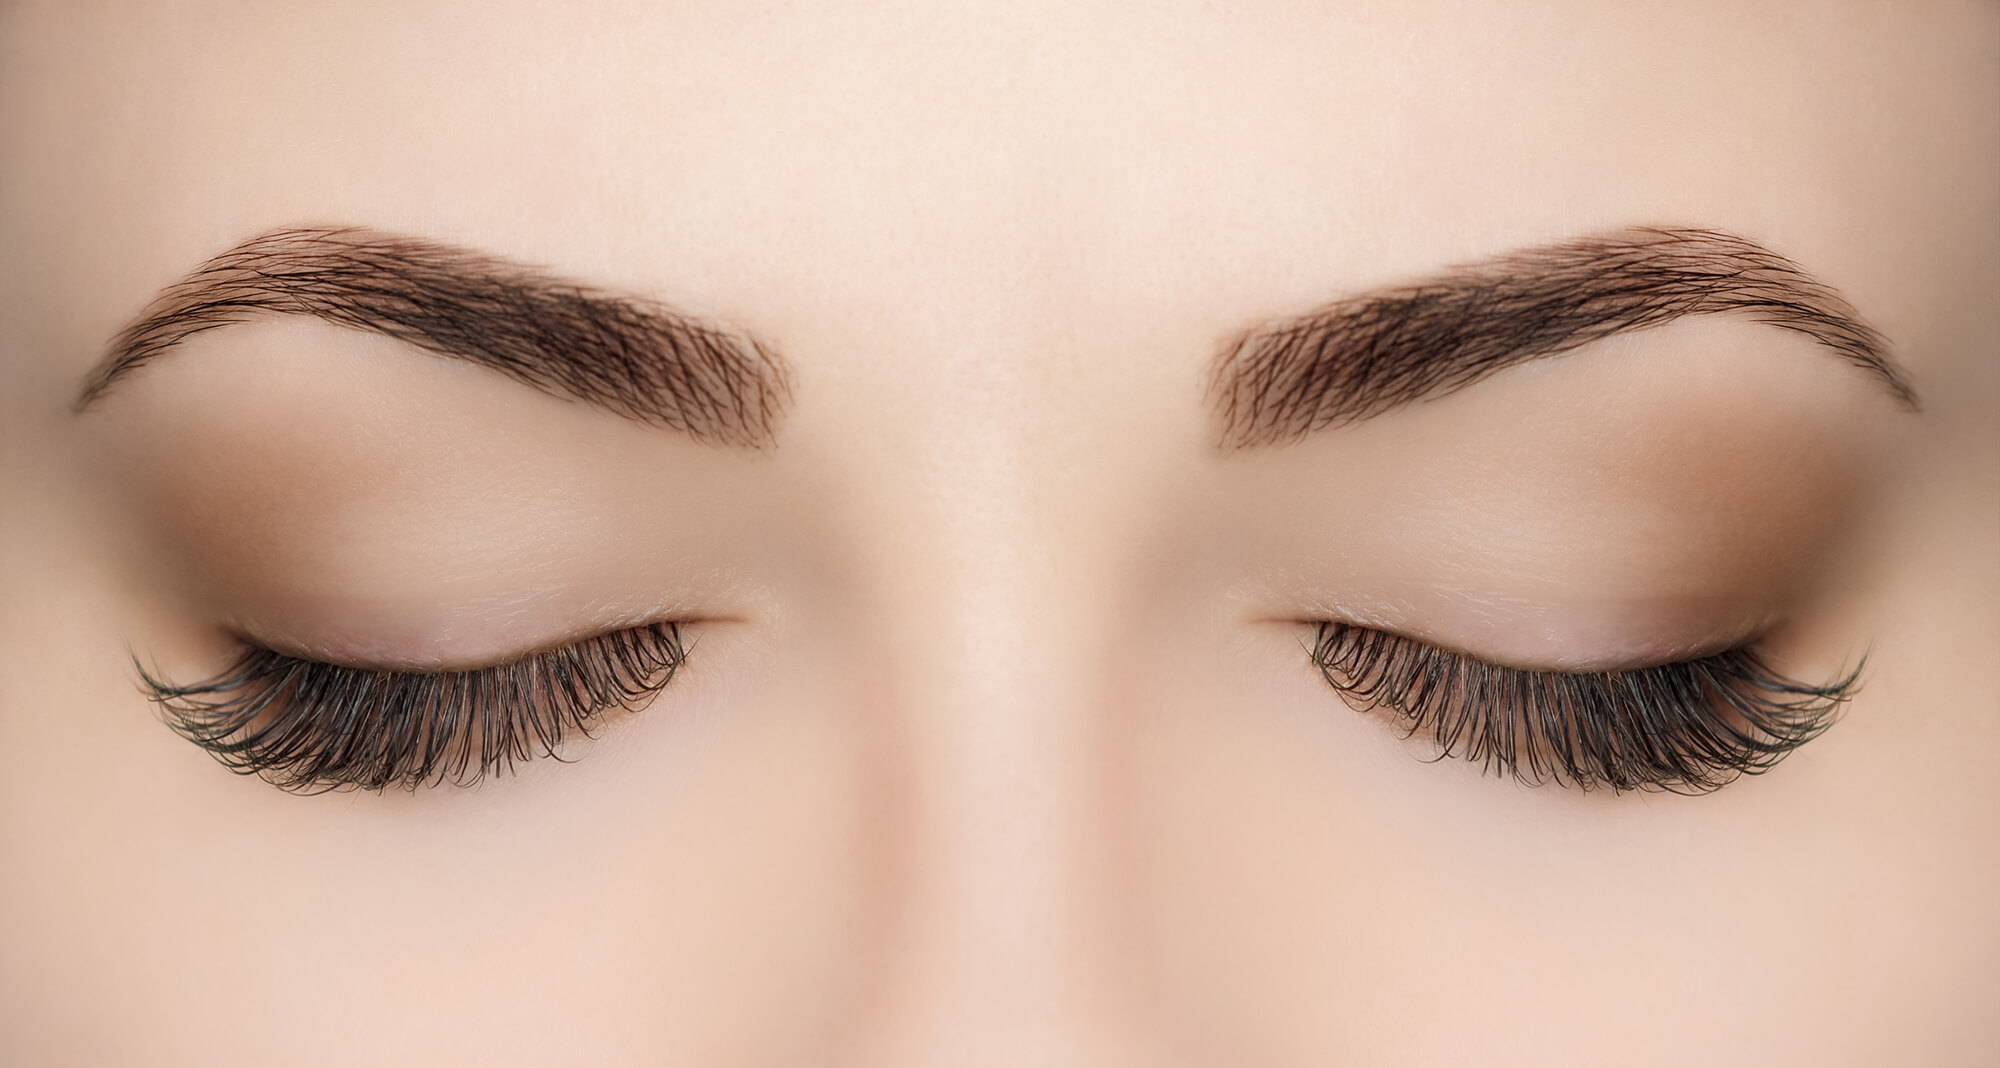 Latisse for natural, bold lashes